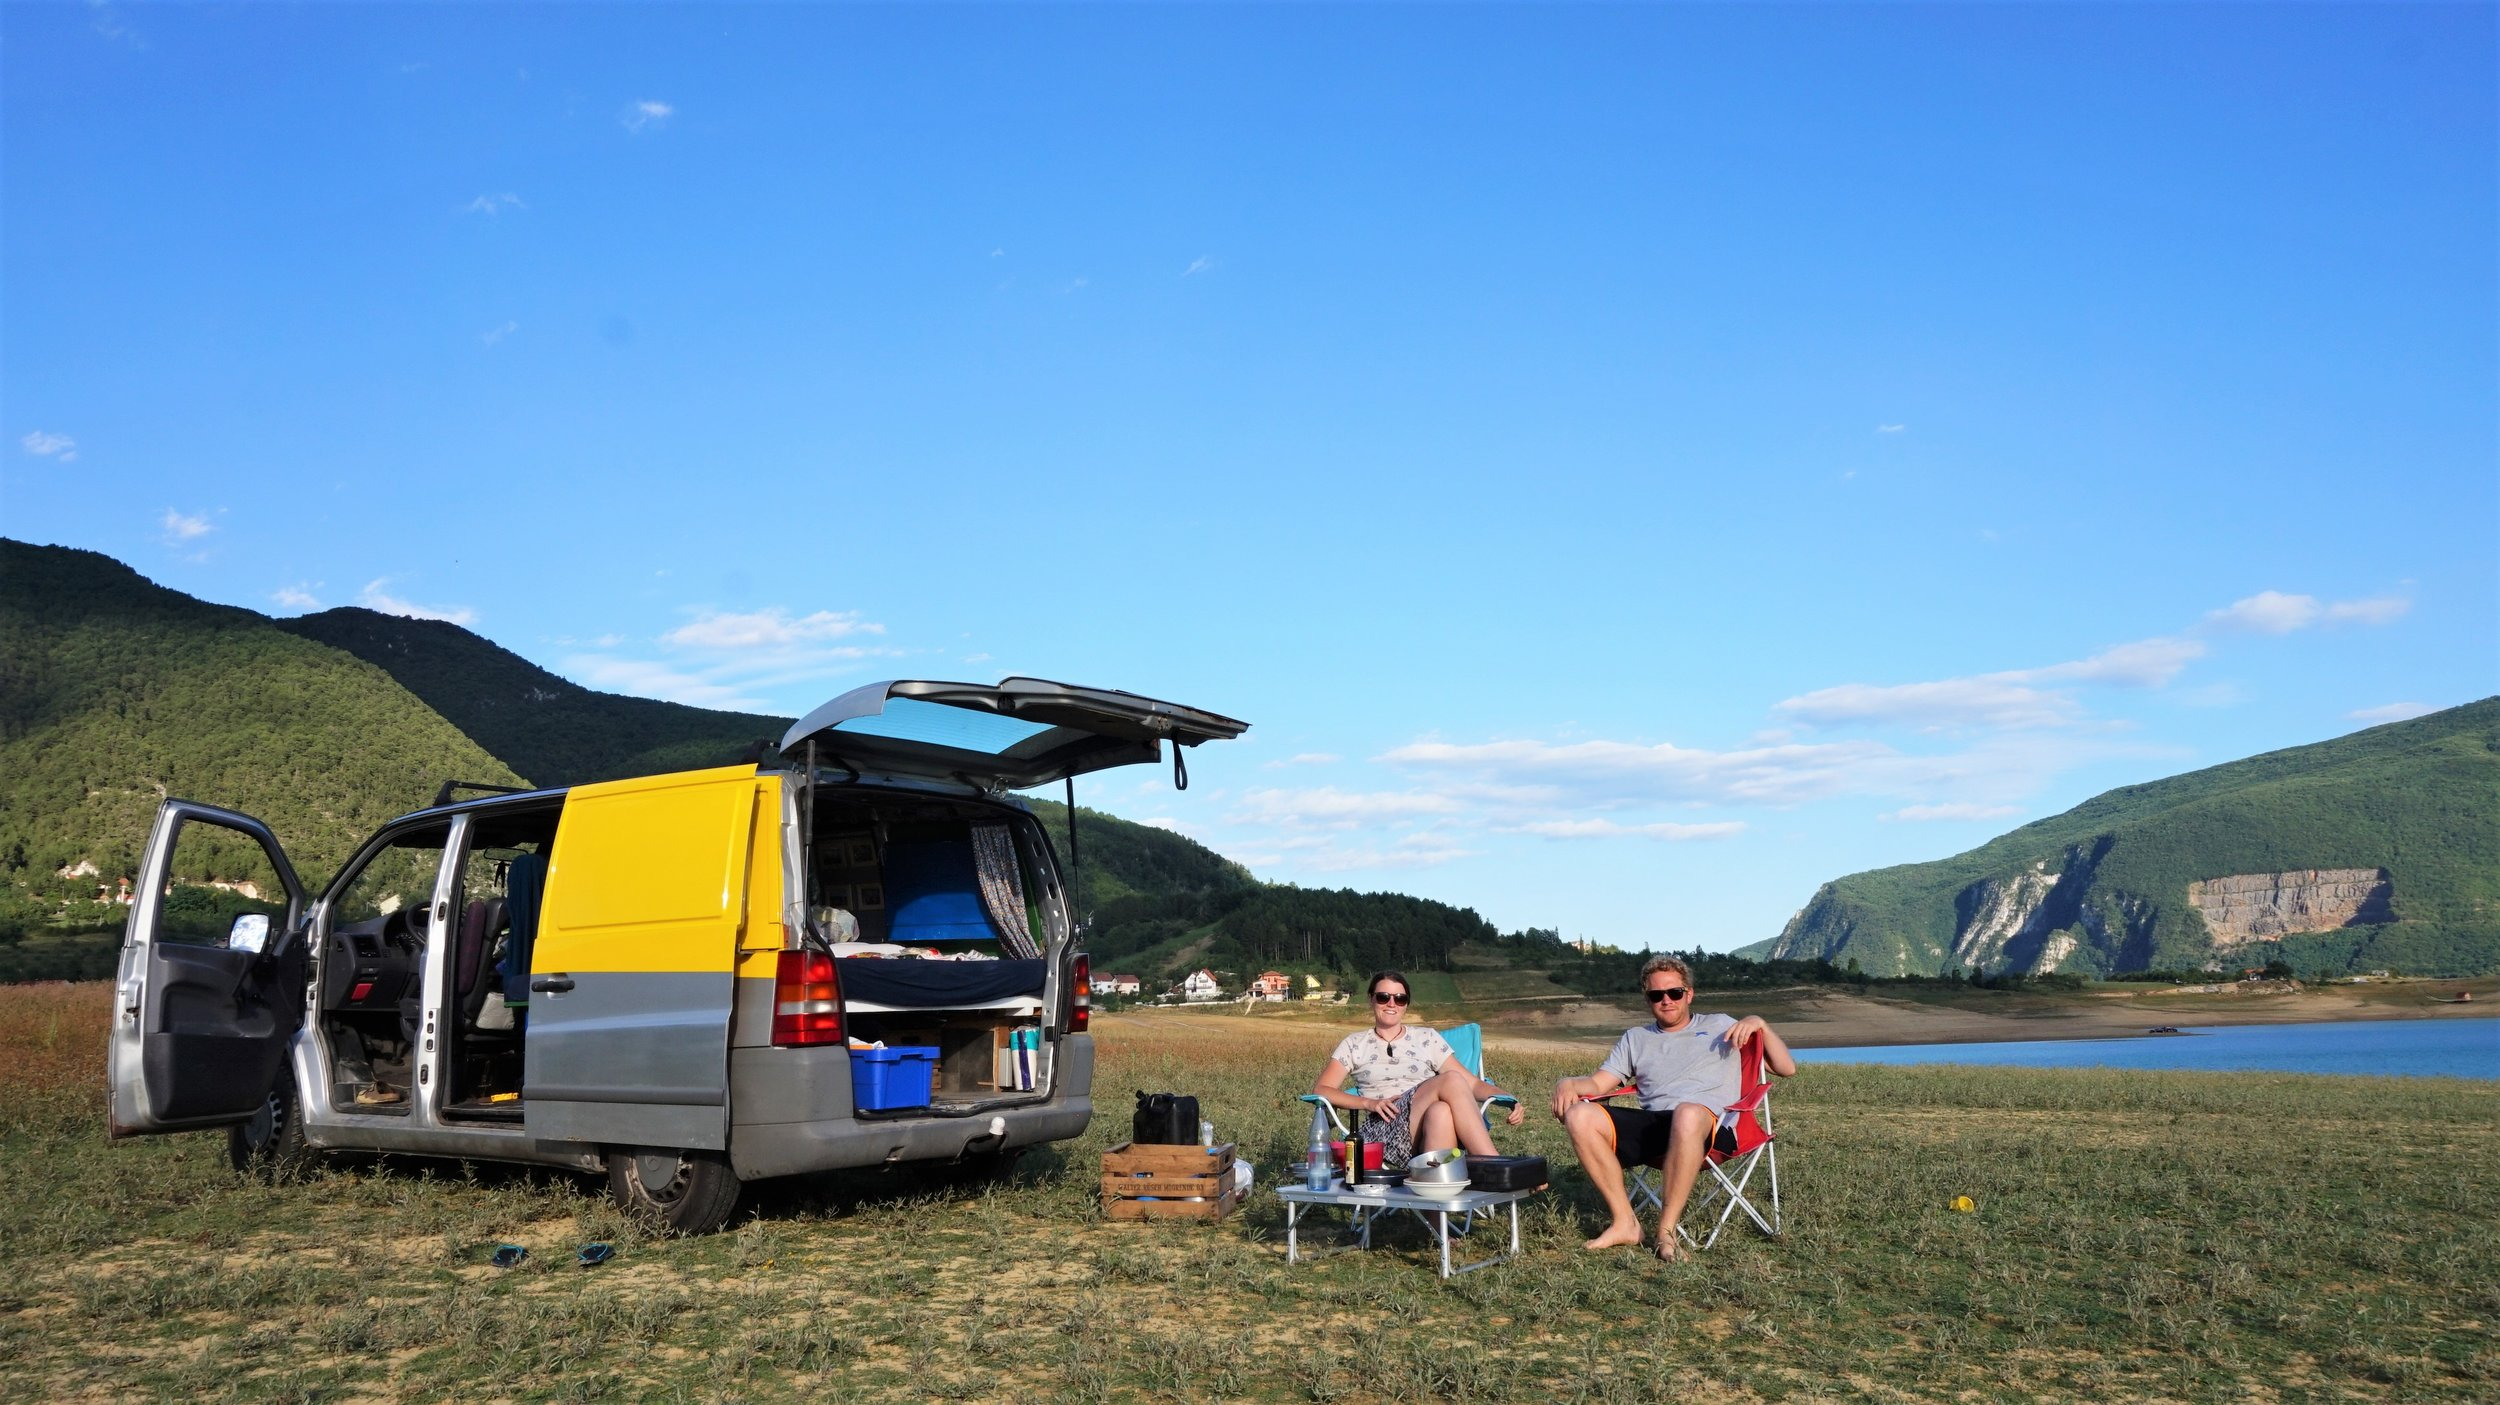 camping in the balkans. The best way to travel the Balkans